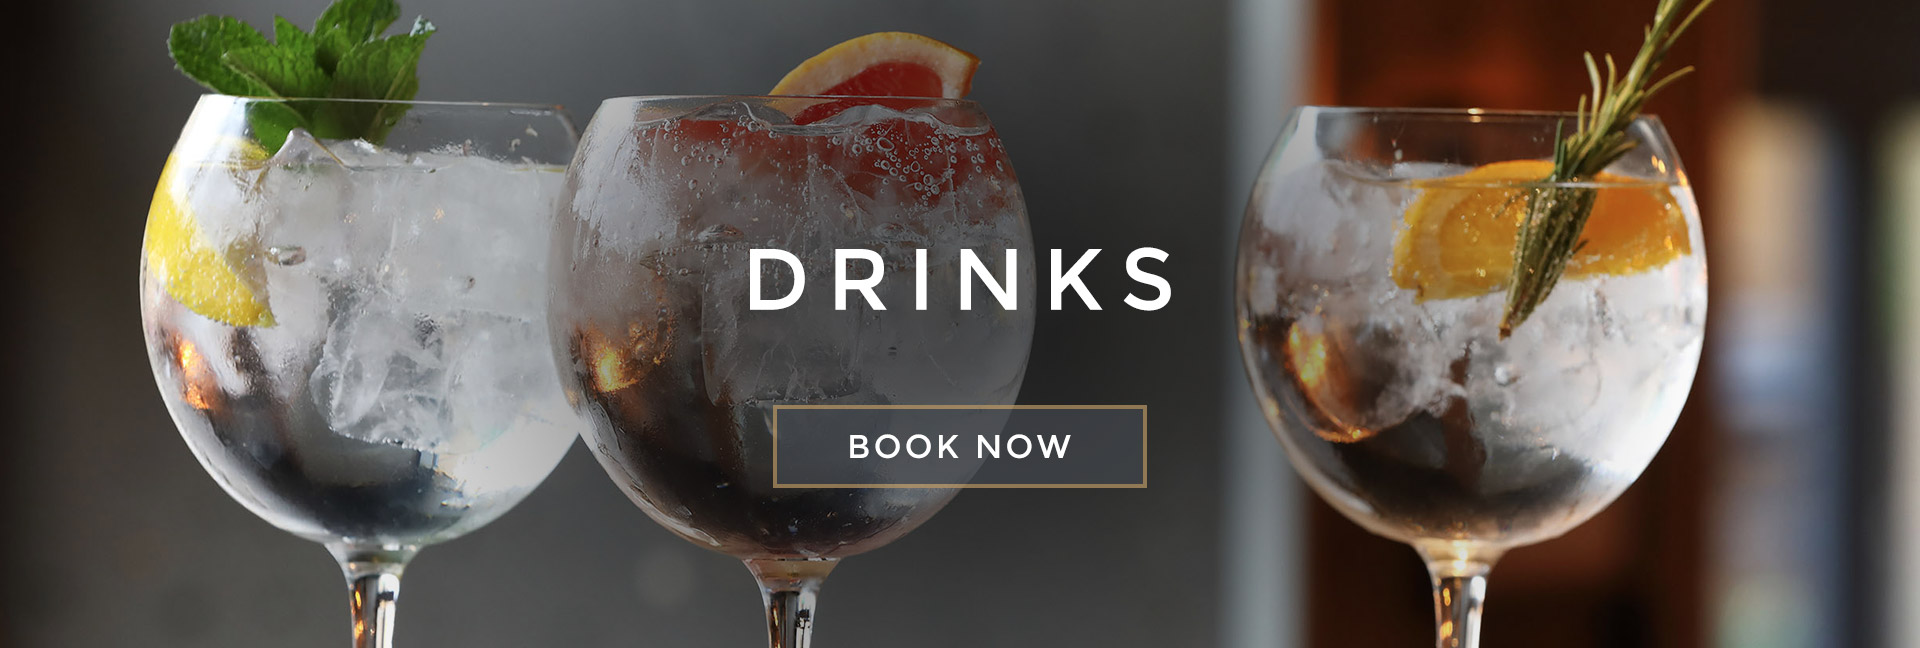 Drinks at All Bar One Cheltenham - Book your table